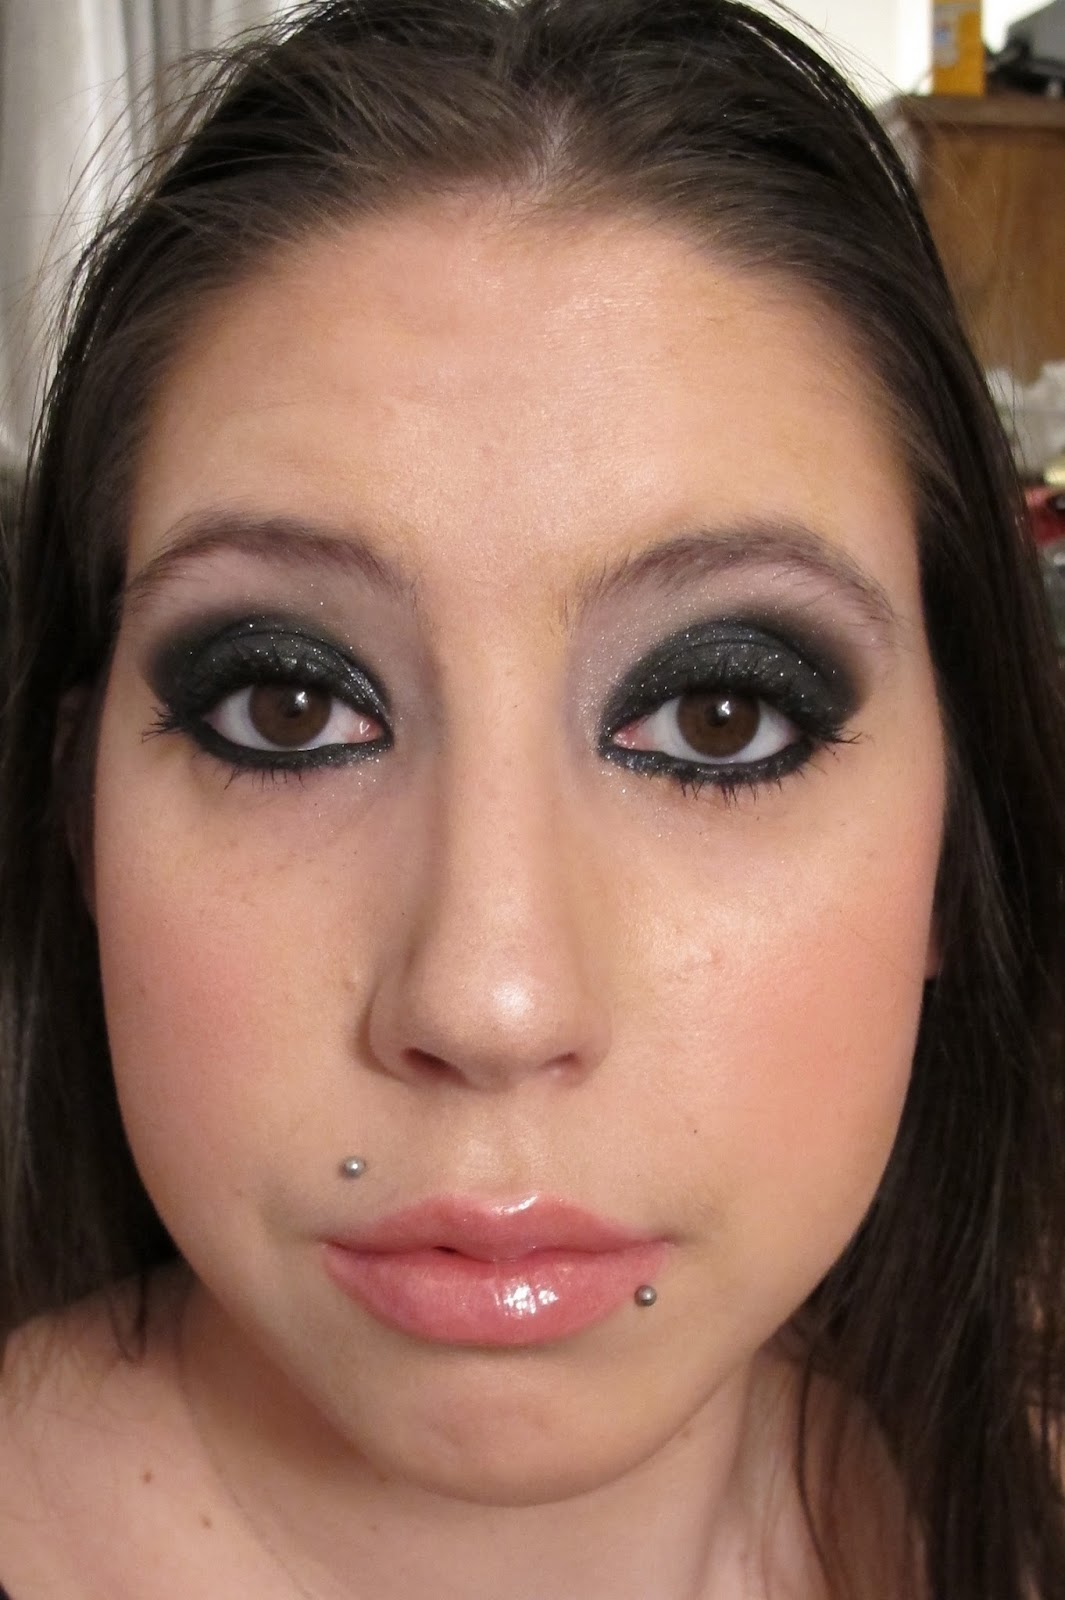 Steph Stud Makeup Sexy Dark Black Smokey Eyes Using Mac